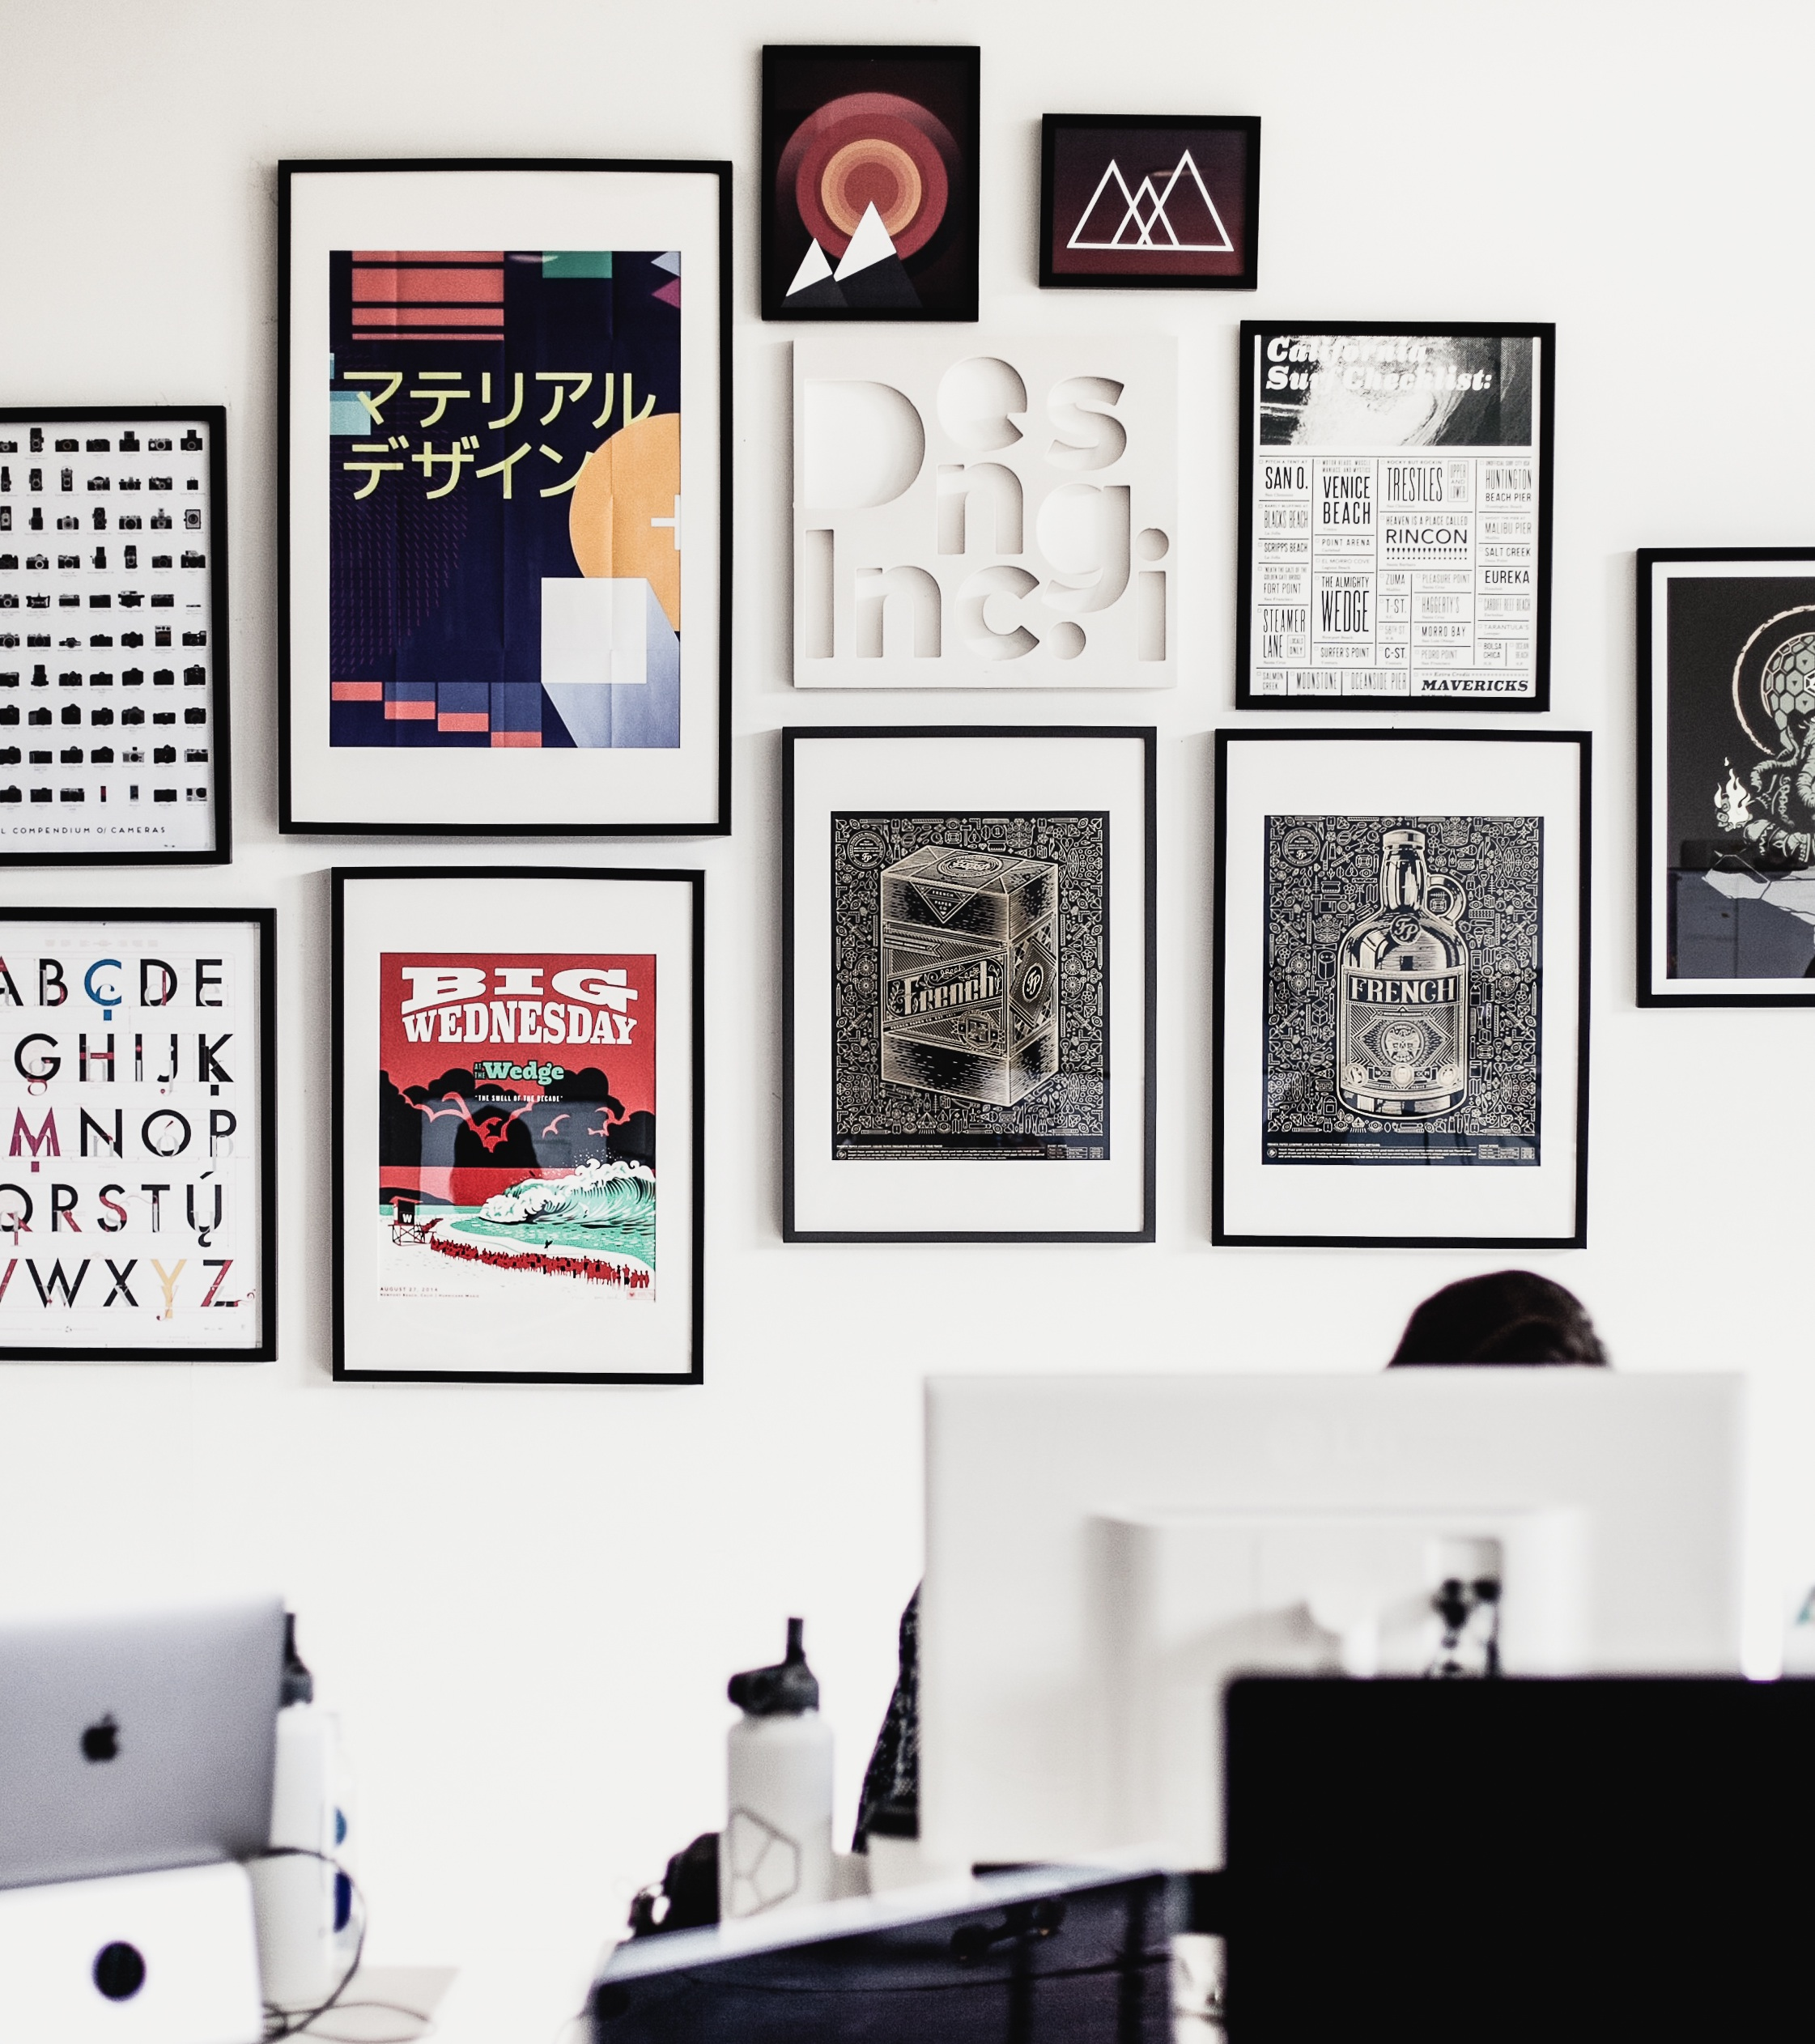 Workspace with posters